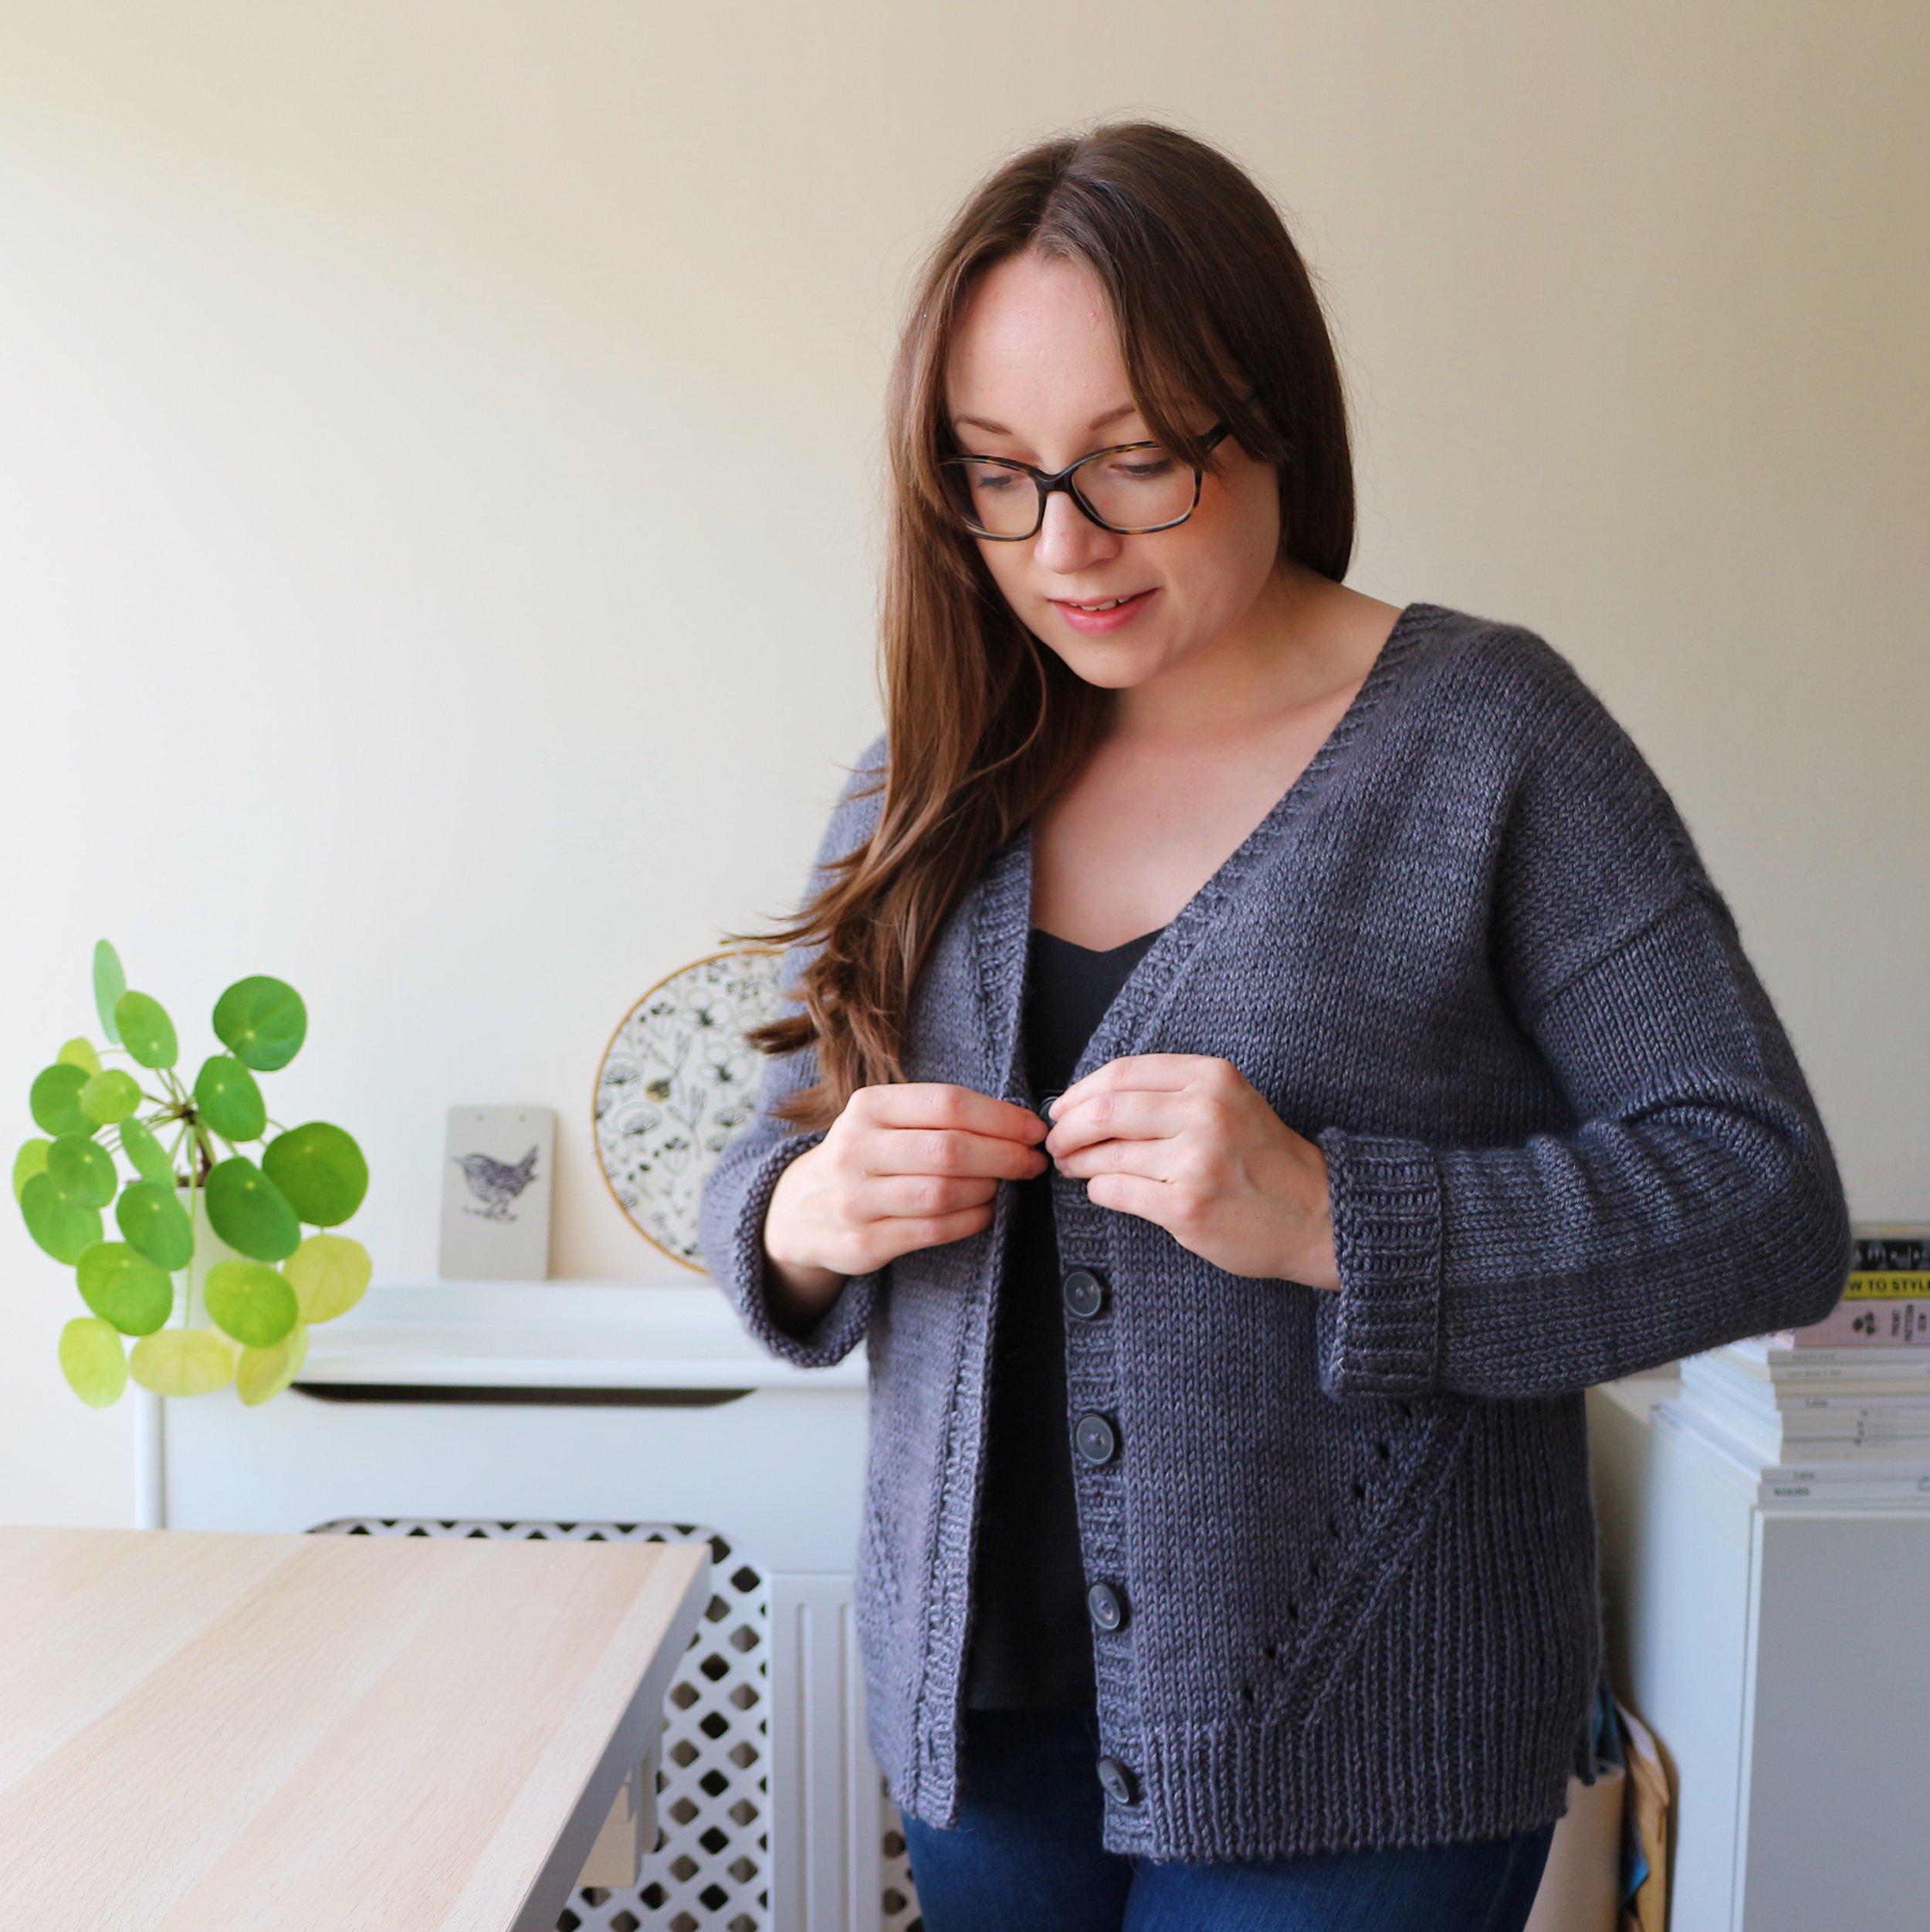 Alex Collins wearing the Brooklyn Tweed Truss cardigan in The Fibre Co. Canopy Worsted